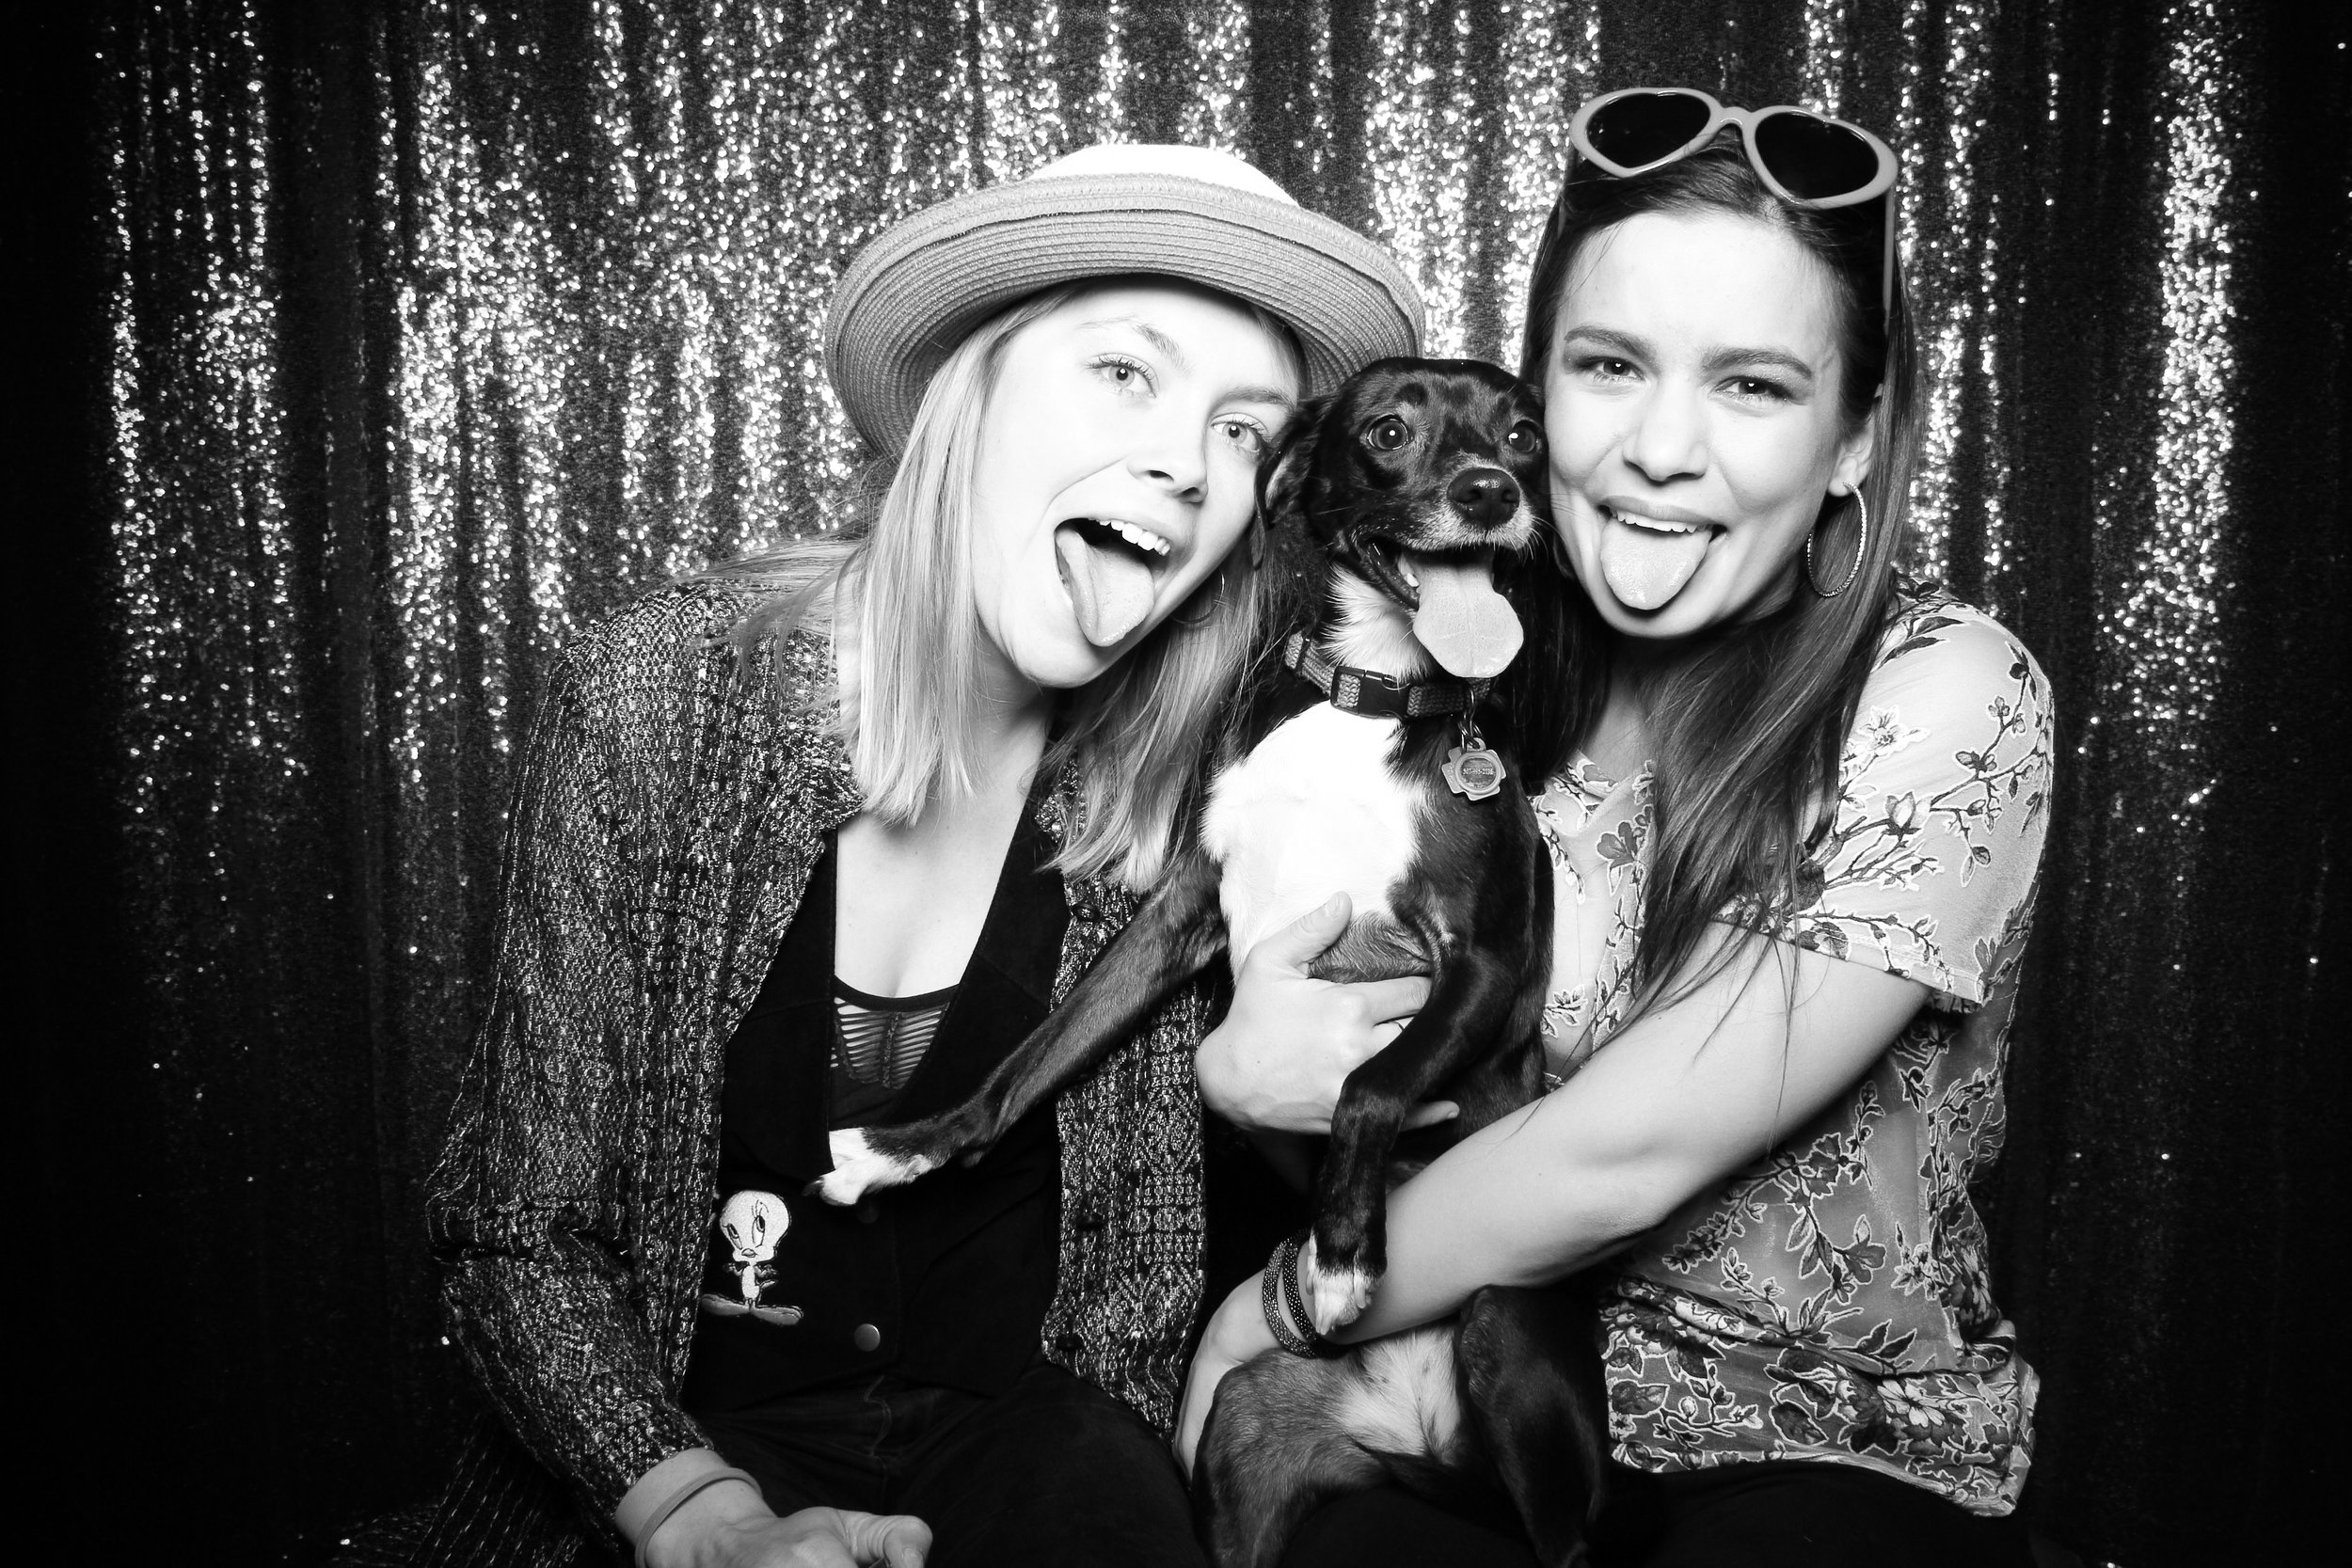 Chicago_Vintage_Photobooth_Valentines_Day_Dog_02.jpg